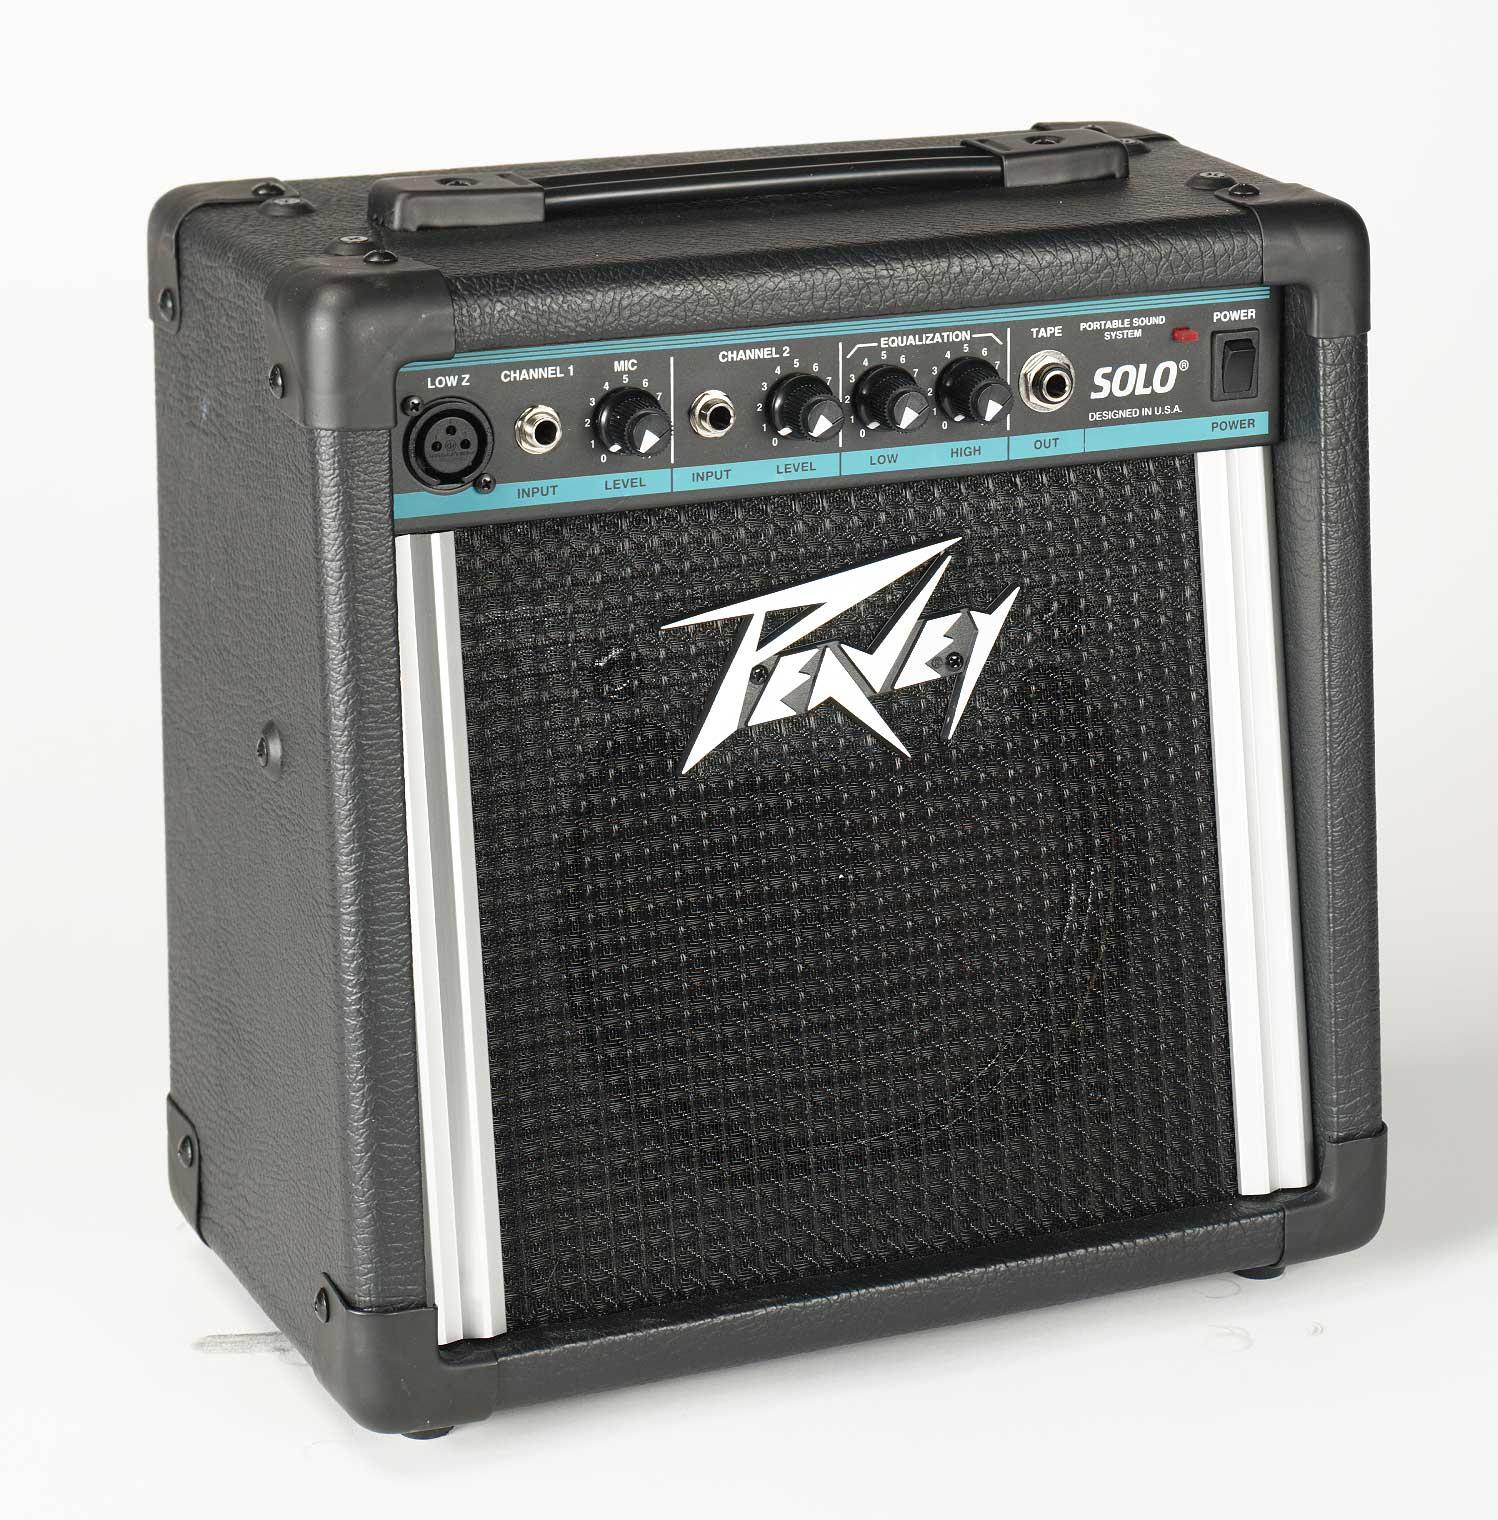 Peavey Solo Portable Please Note Power Supply Not Included